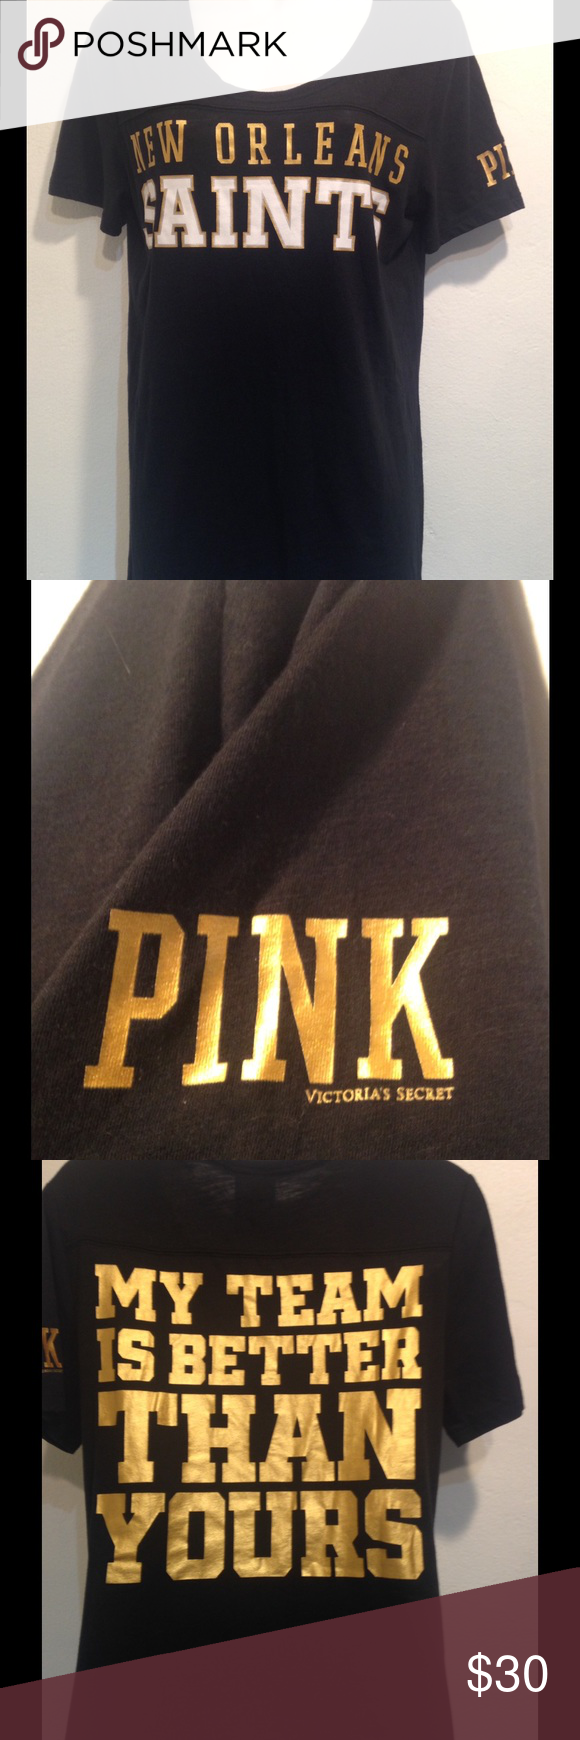 vs pink new orleans saints shirt vs pink new orleans saints shirt size L no holes or stains smoke free home PINK Victoria's Secret Tops Tees - Short Sleeve